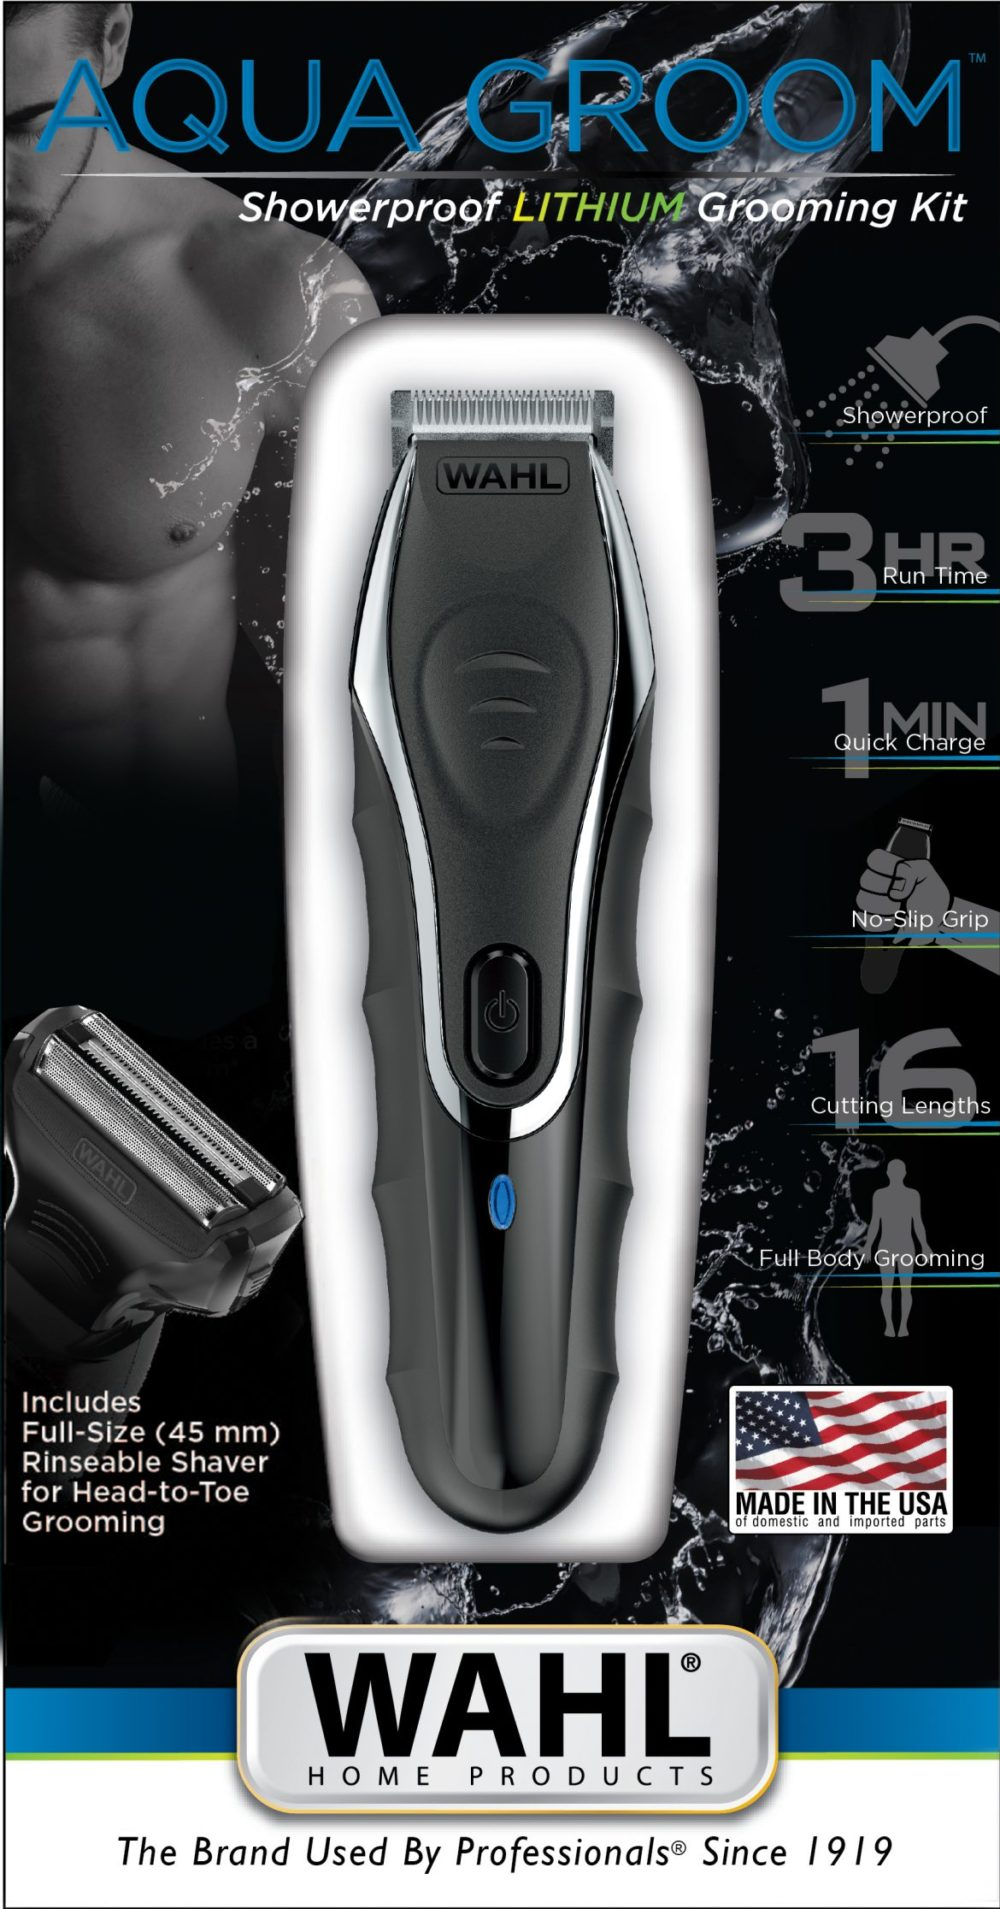 Wahl aqua groom recension